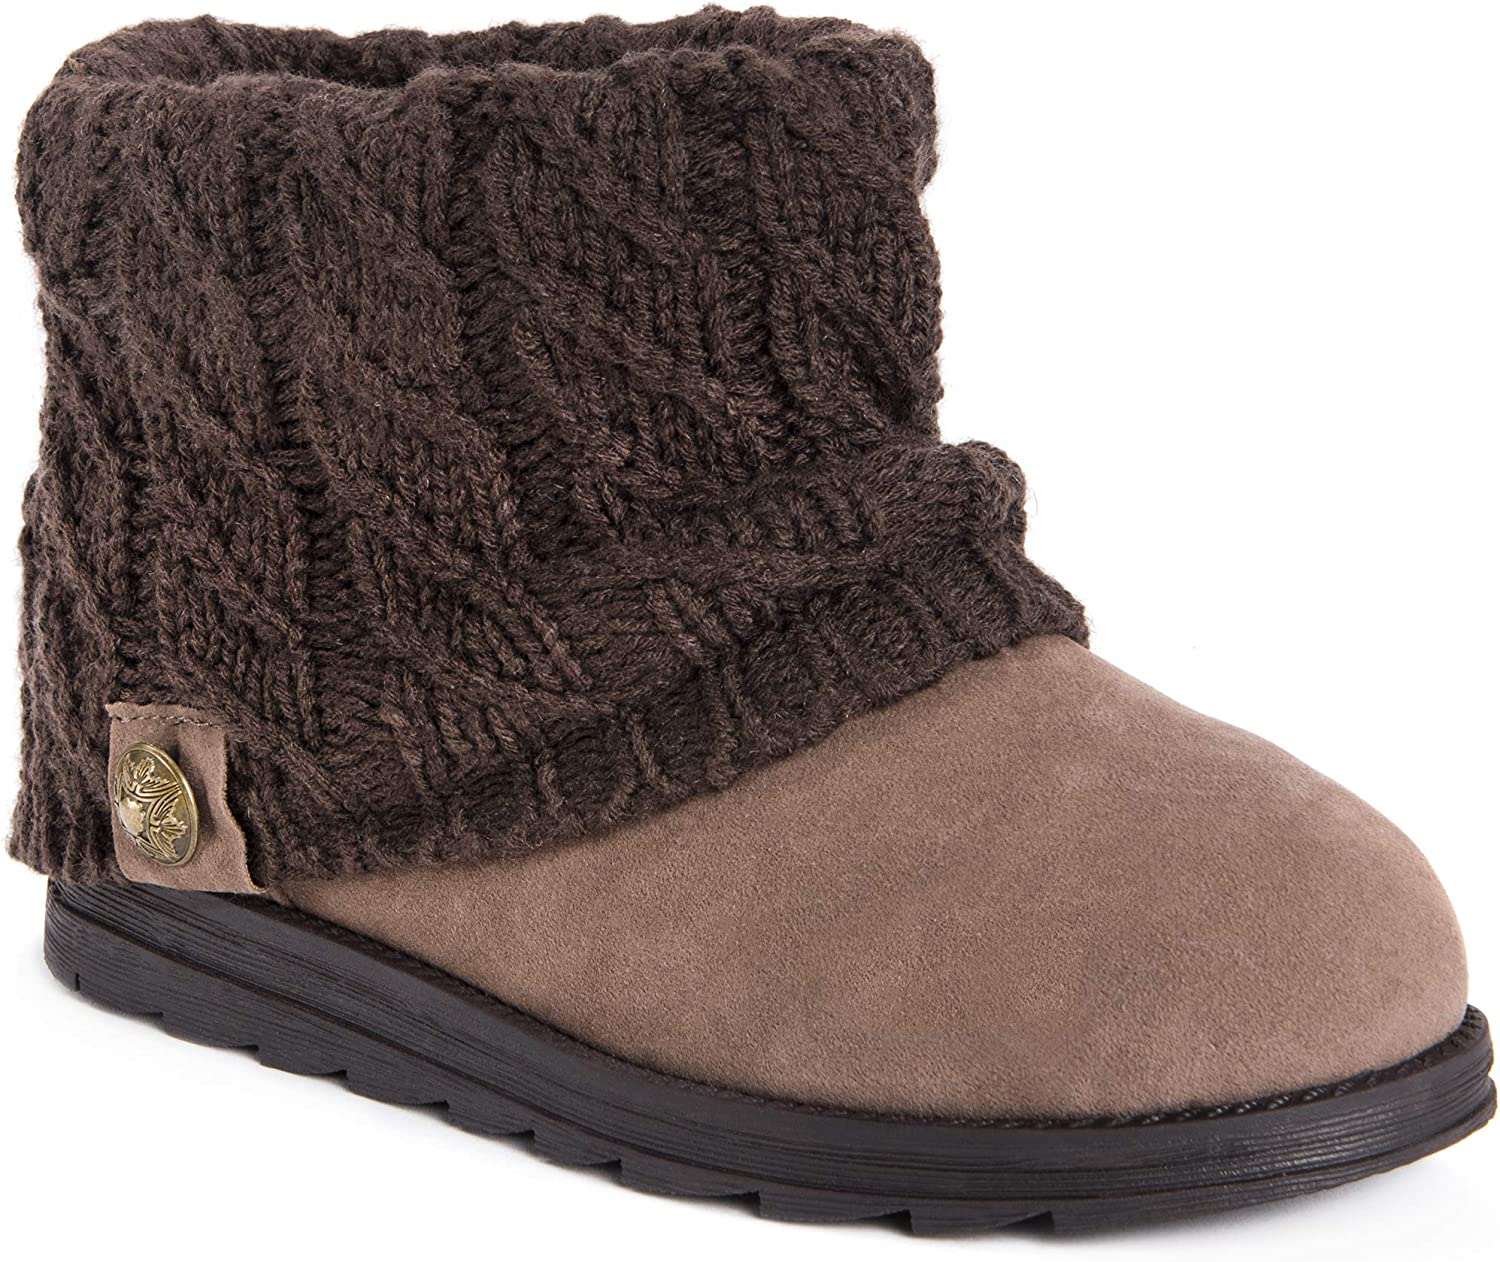 MUK LUKS Womens Women's Patti Short Boots Fashion Boot